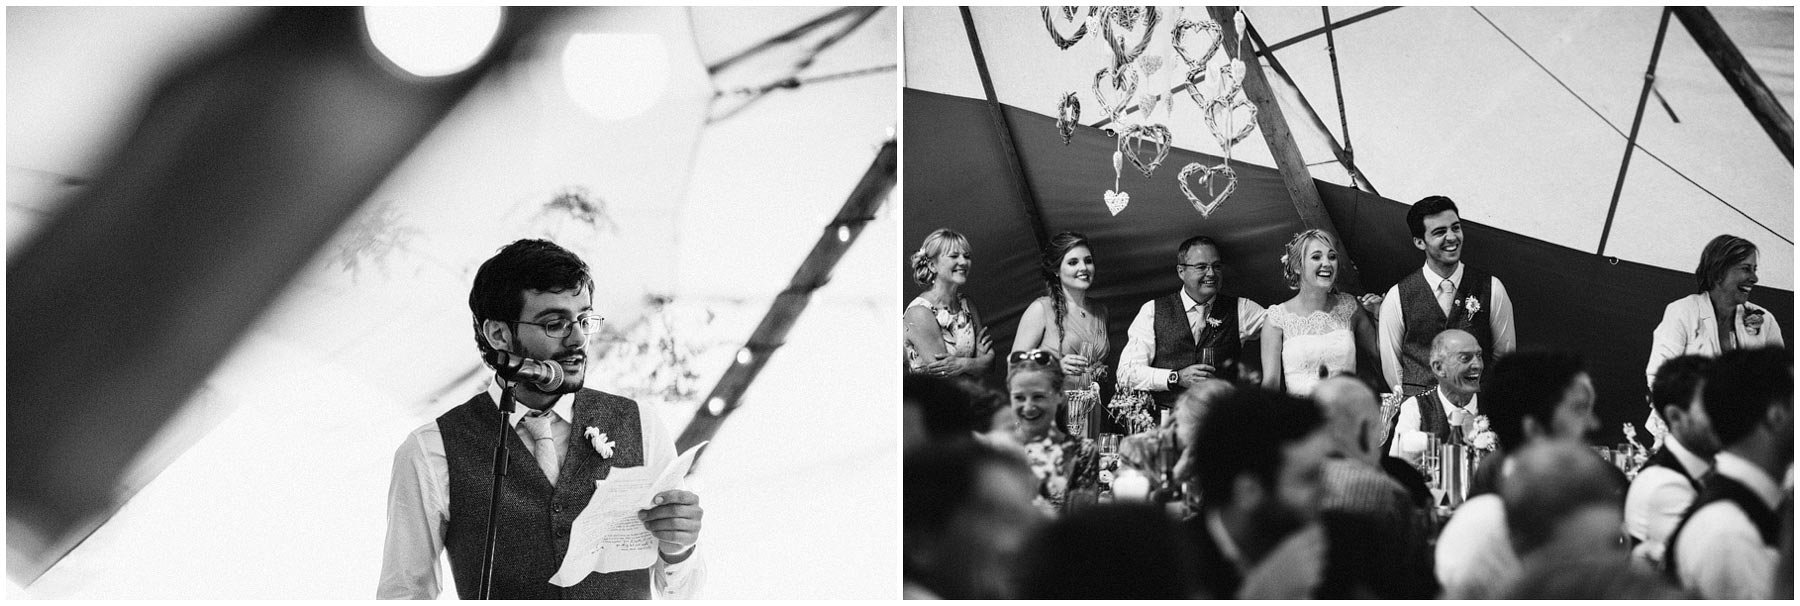 Kent-Festival-Tipi-wedding-photography_0129